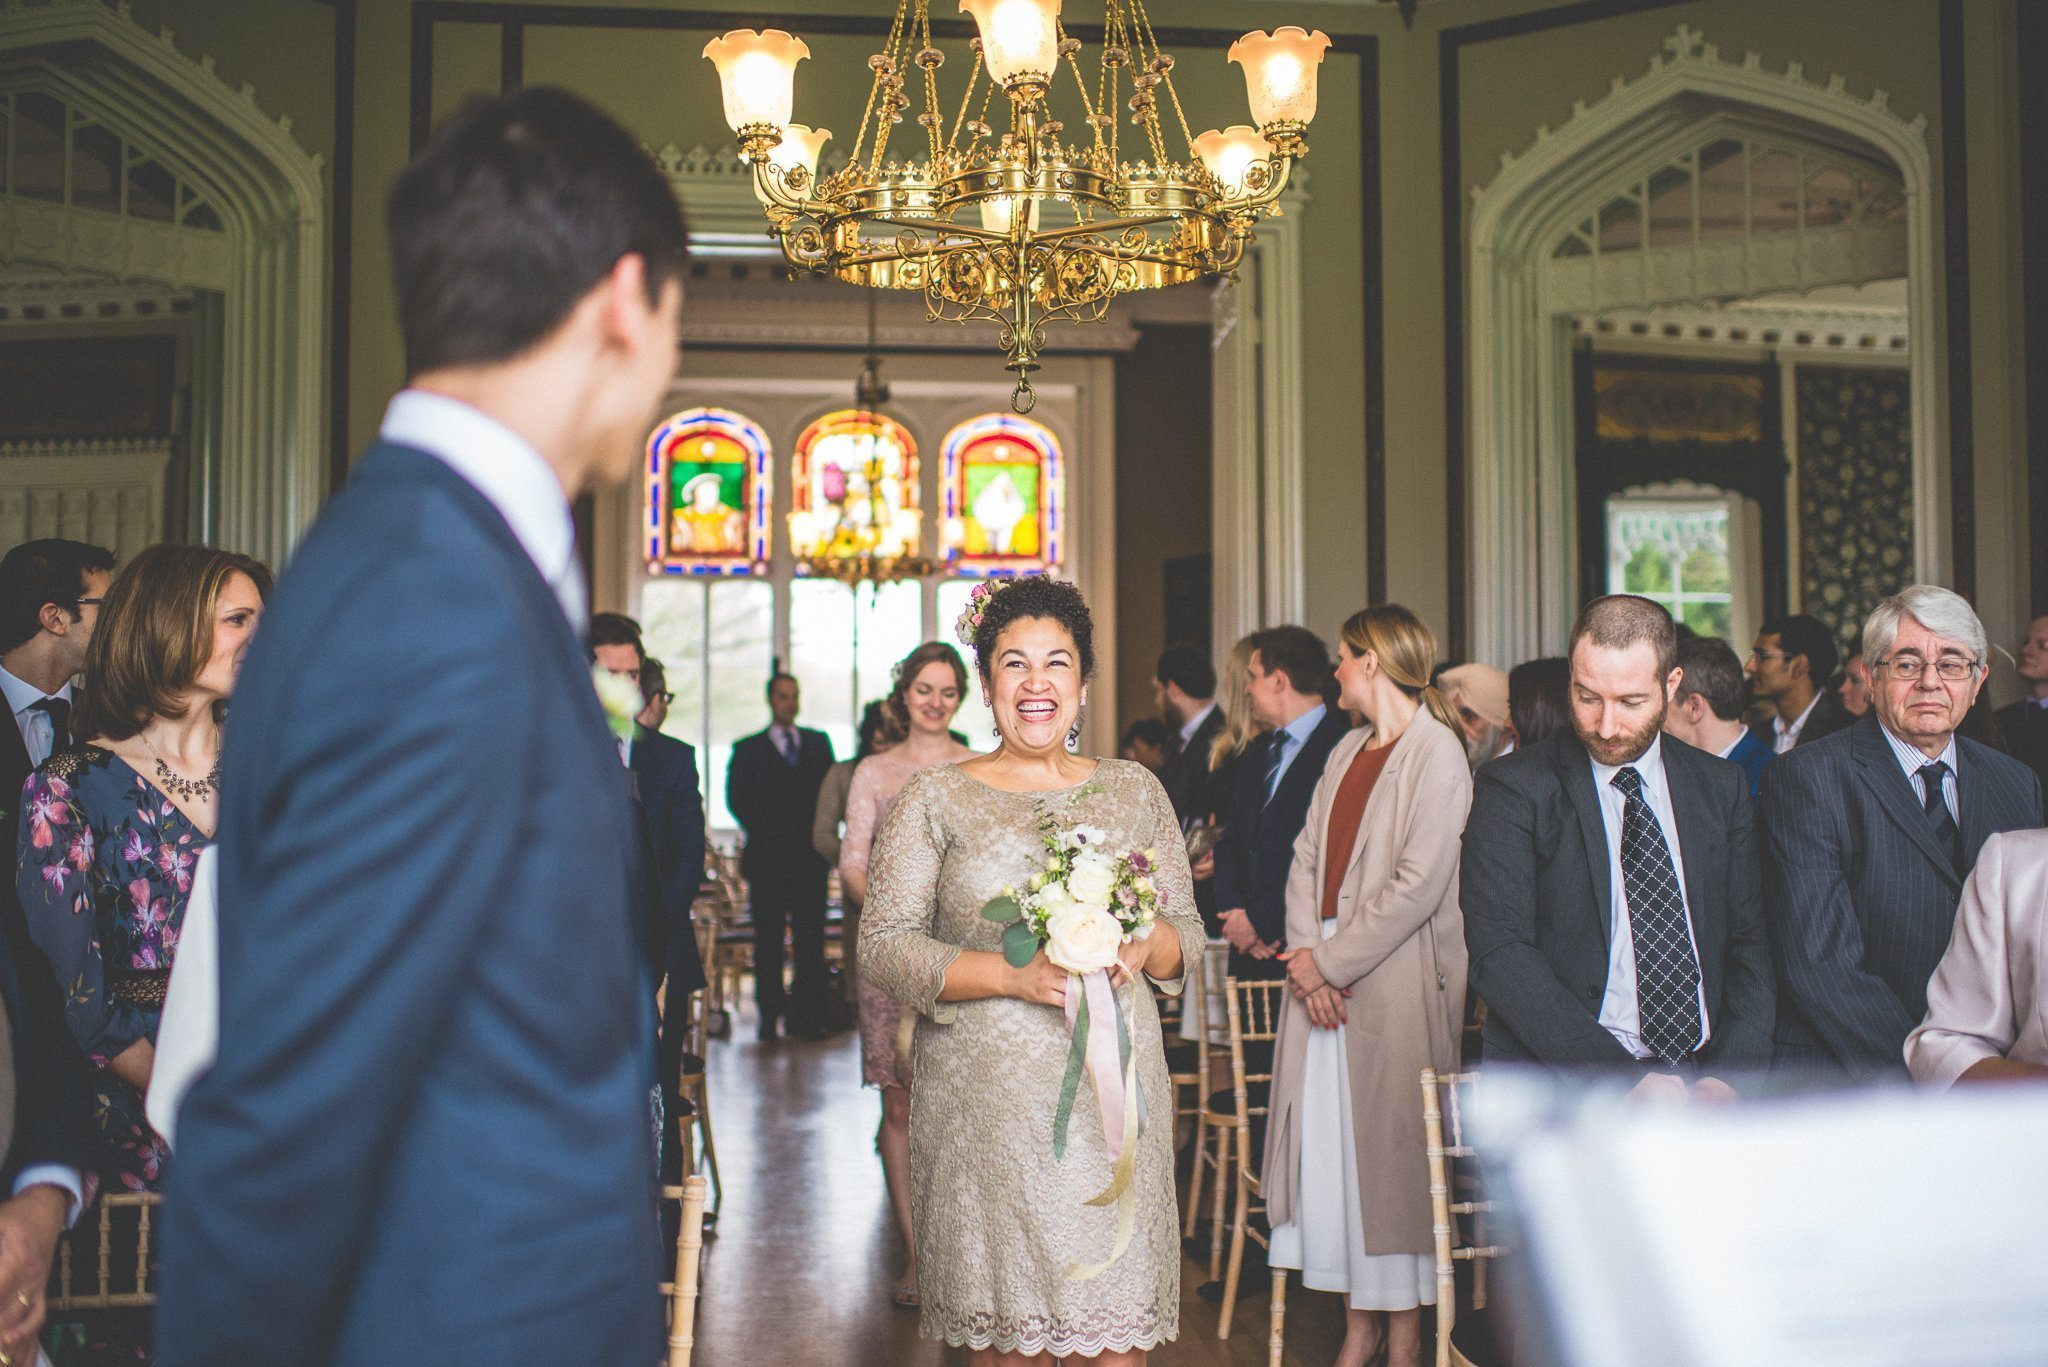 The bridesmaids walk down the aisle, carrying posies and wearing dresses in gold and pale pink